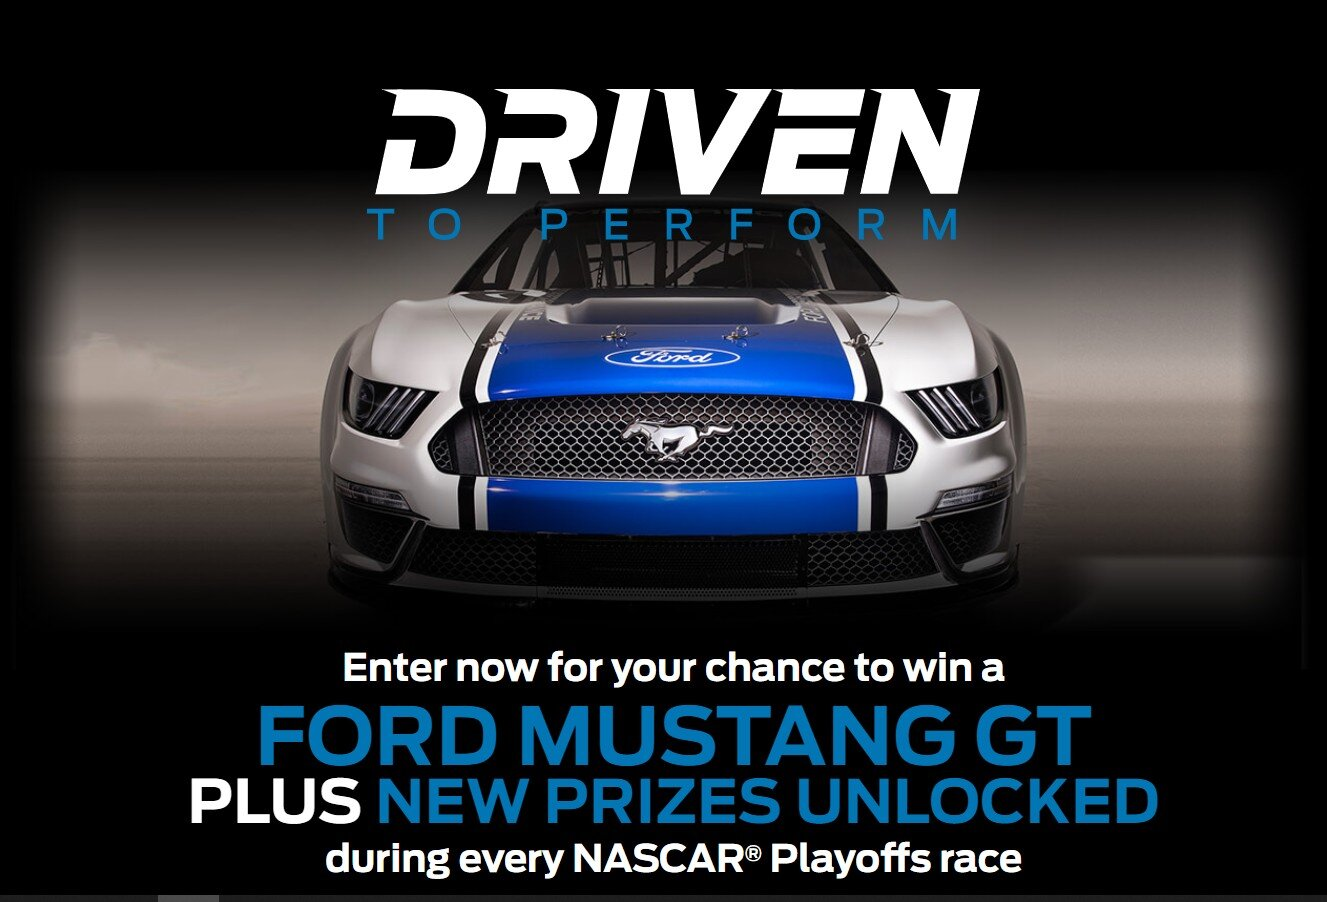 2019-ford-nascar-driven-to-perform-sweepstakes.jpg